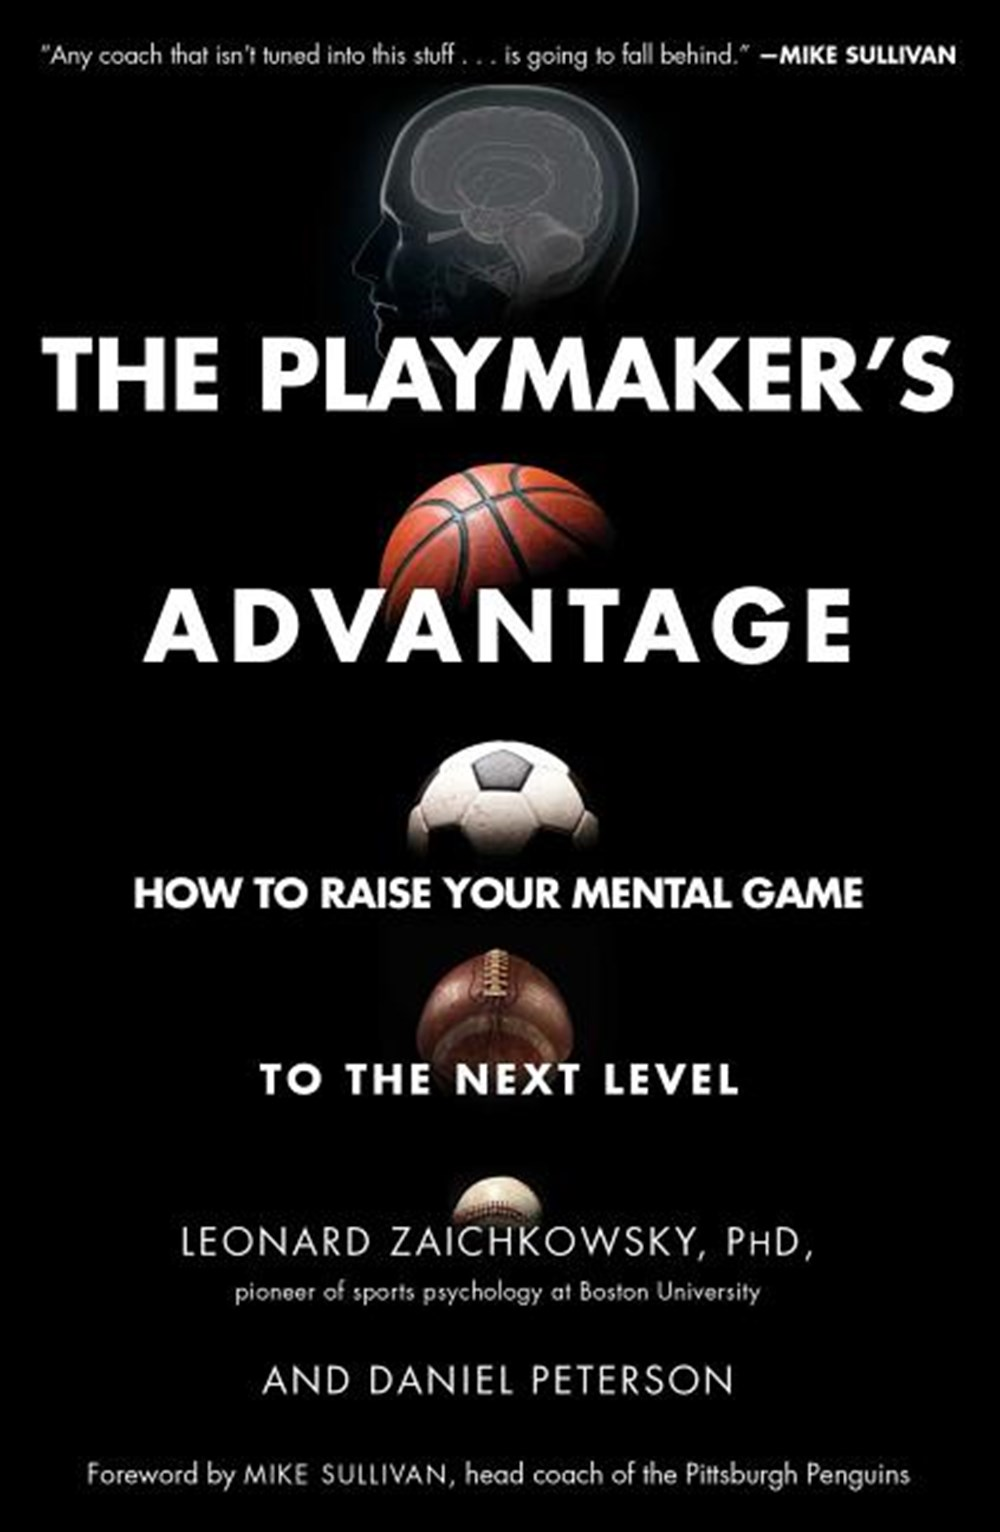 Playmaker's Advantage How to Raise Your Mental Game to the Next Level